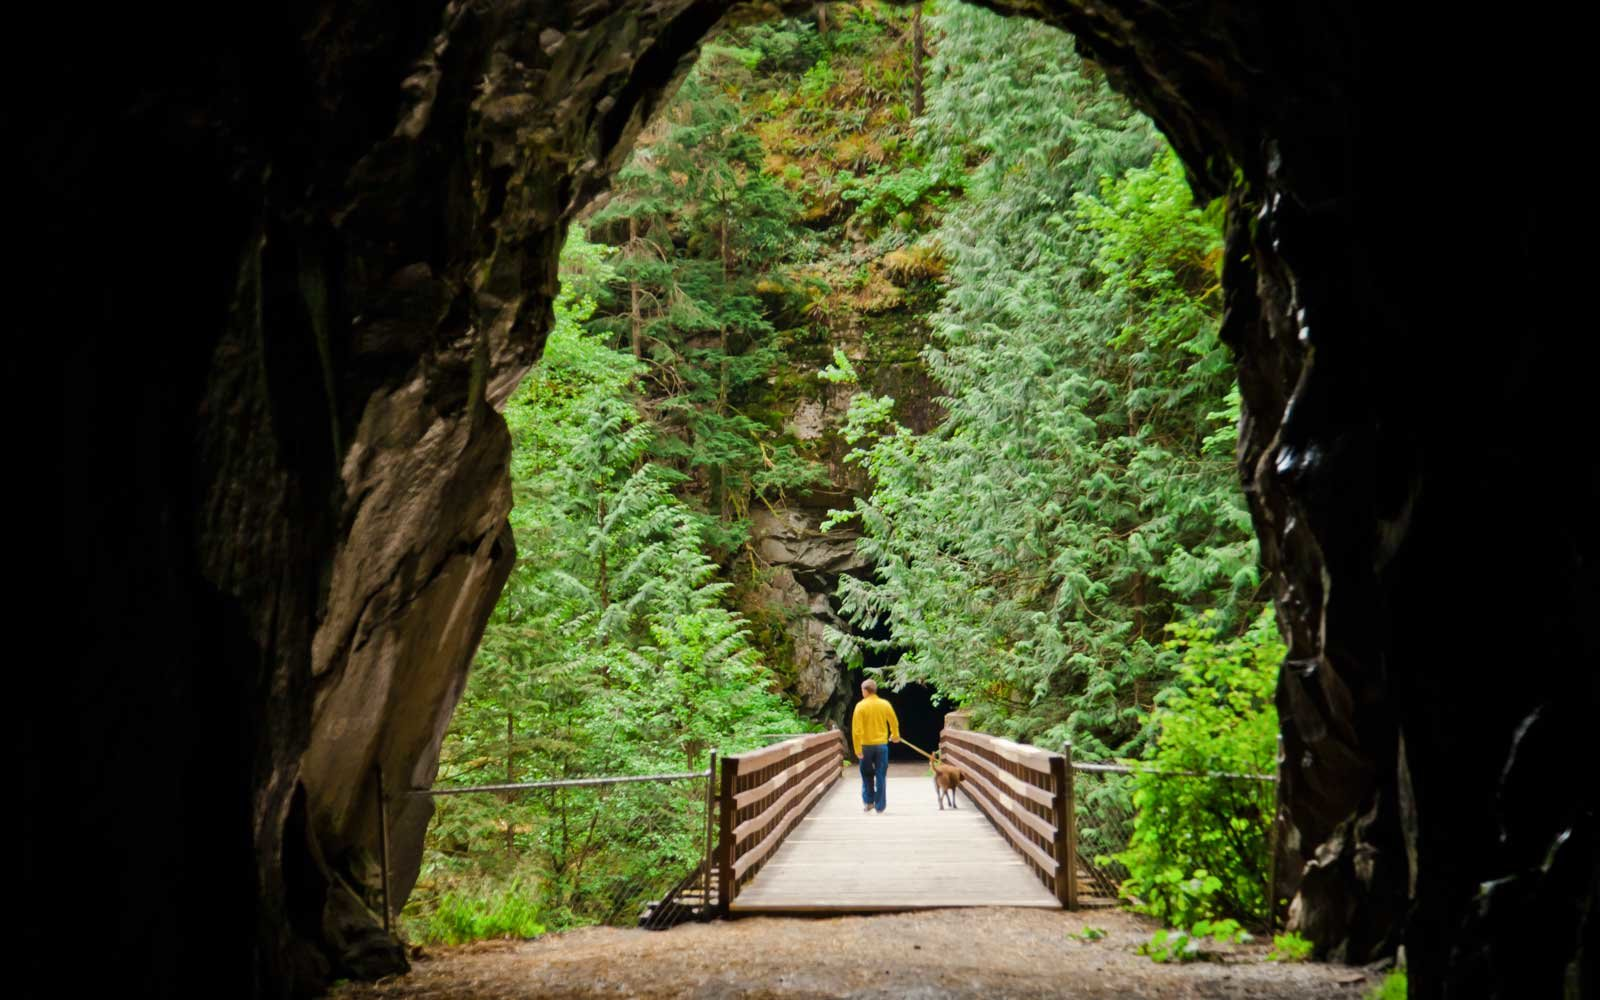 Othello Tunnels, historically a part of the Kettle Valley Railway near Hope, BC, Canada.